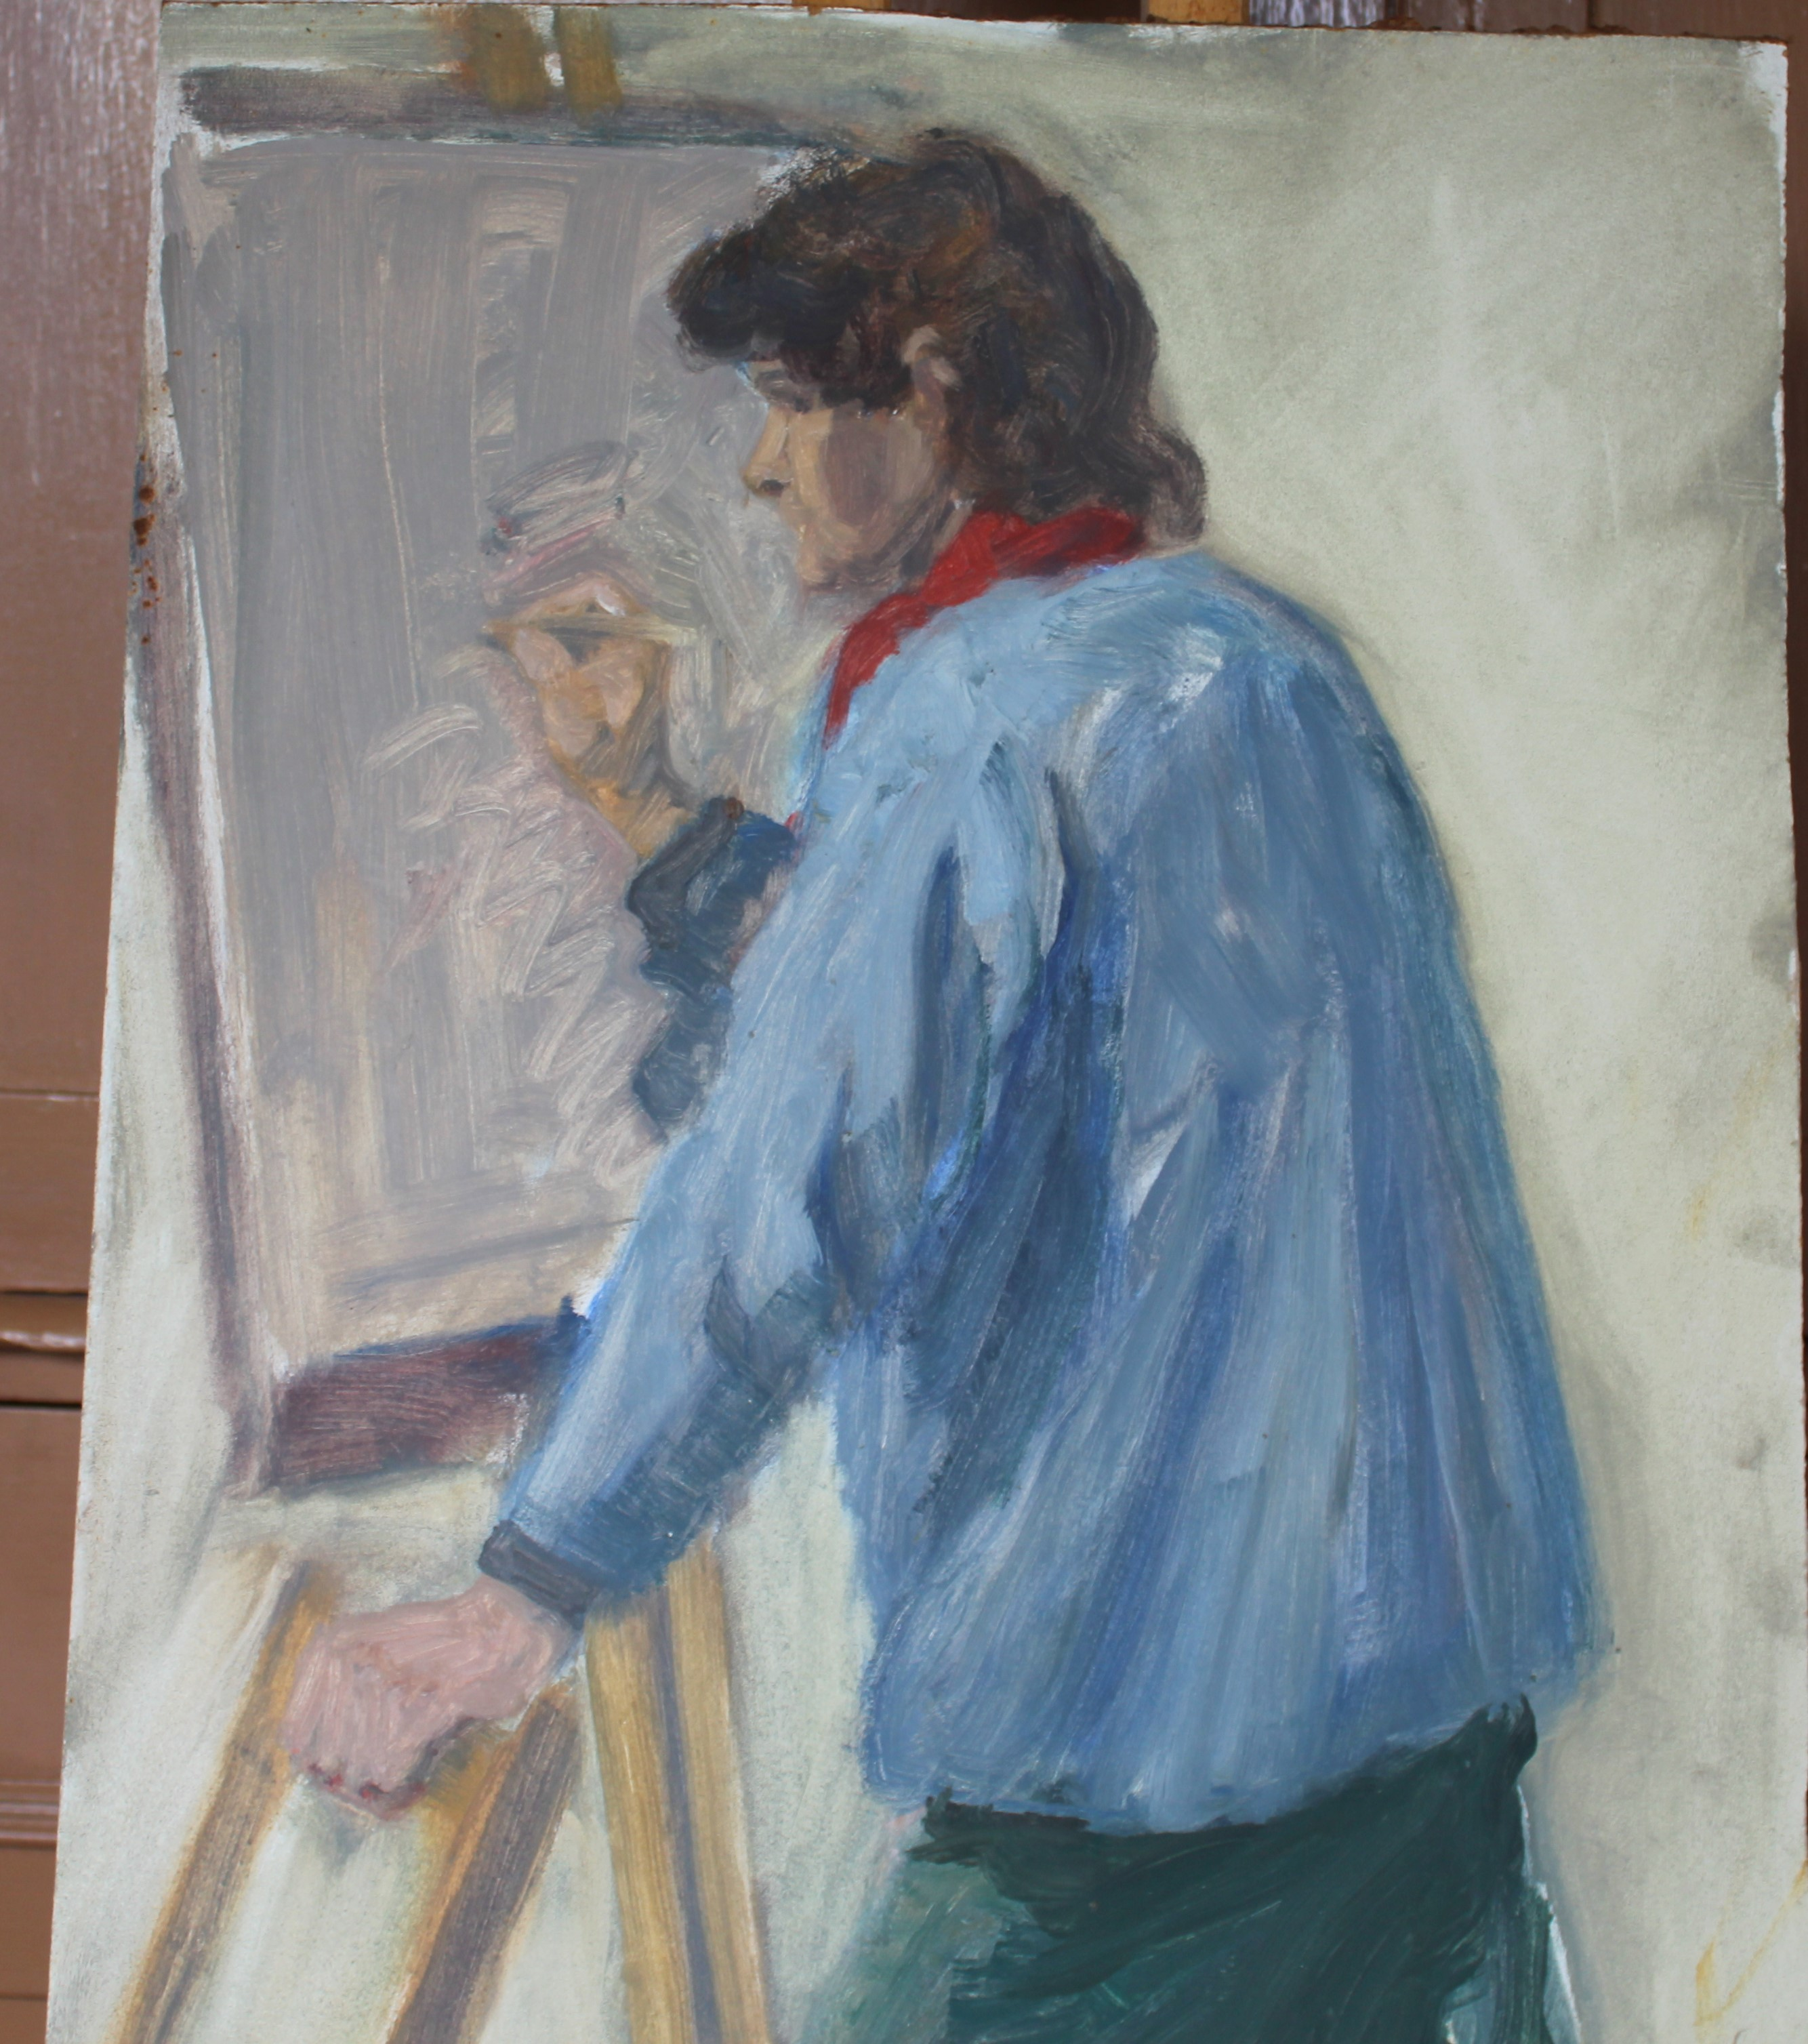 •TWO FIGURES SITTING ON A CLIFF TOP PAINTING A COASTAL SCENE Signed unframed oil on board, 30.5 x - Image 6 of 7